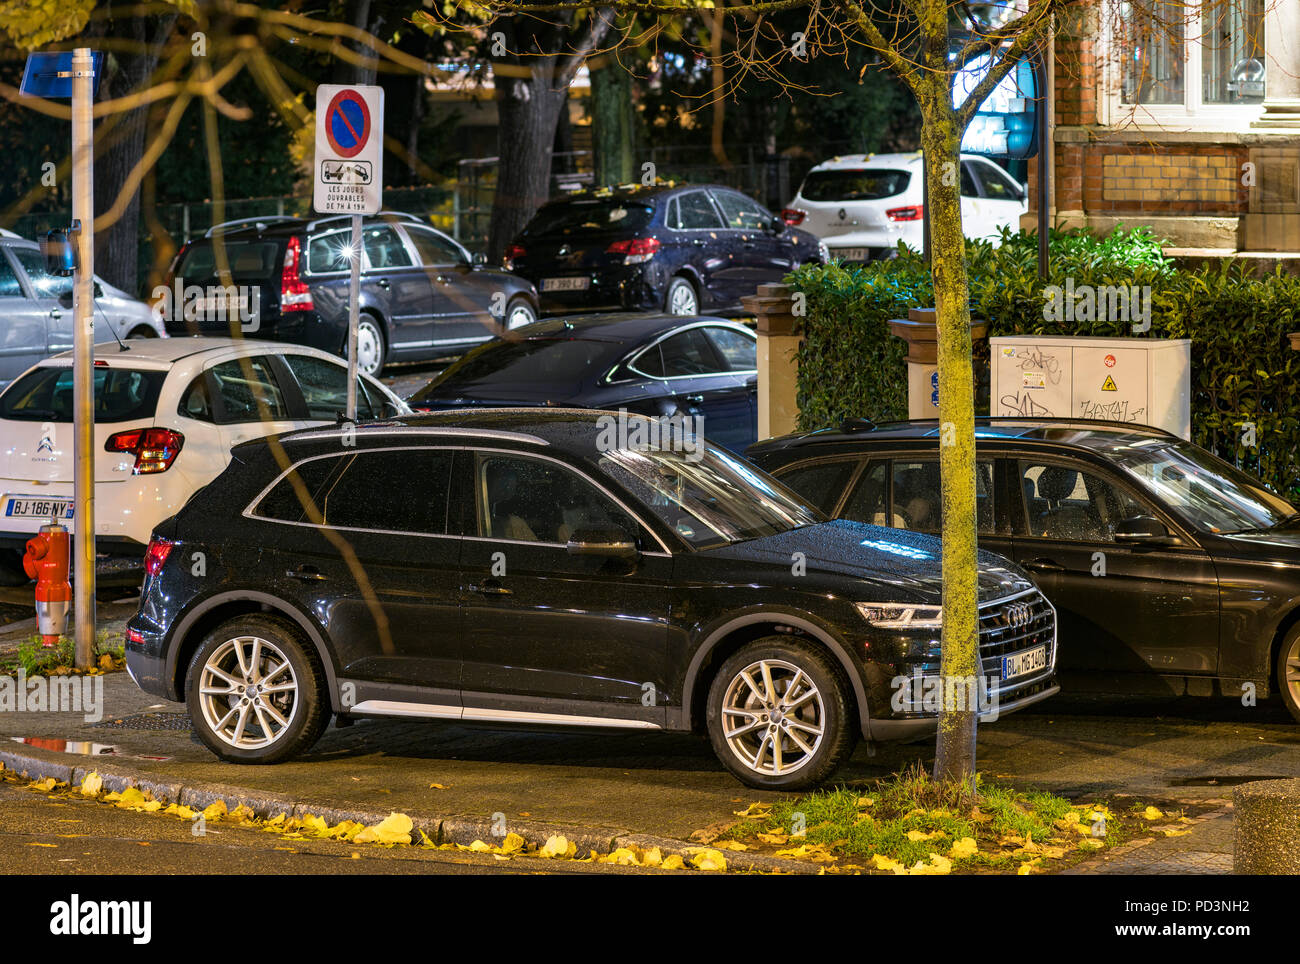 Cars parked on pavement at night, Strasbourg, Alsace, France, Europe, - Stock Image